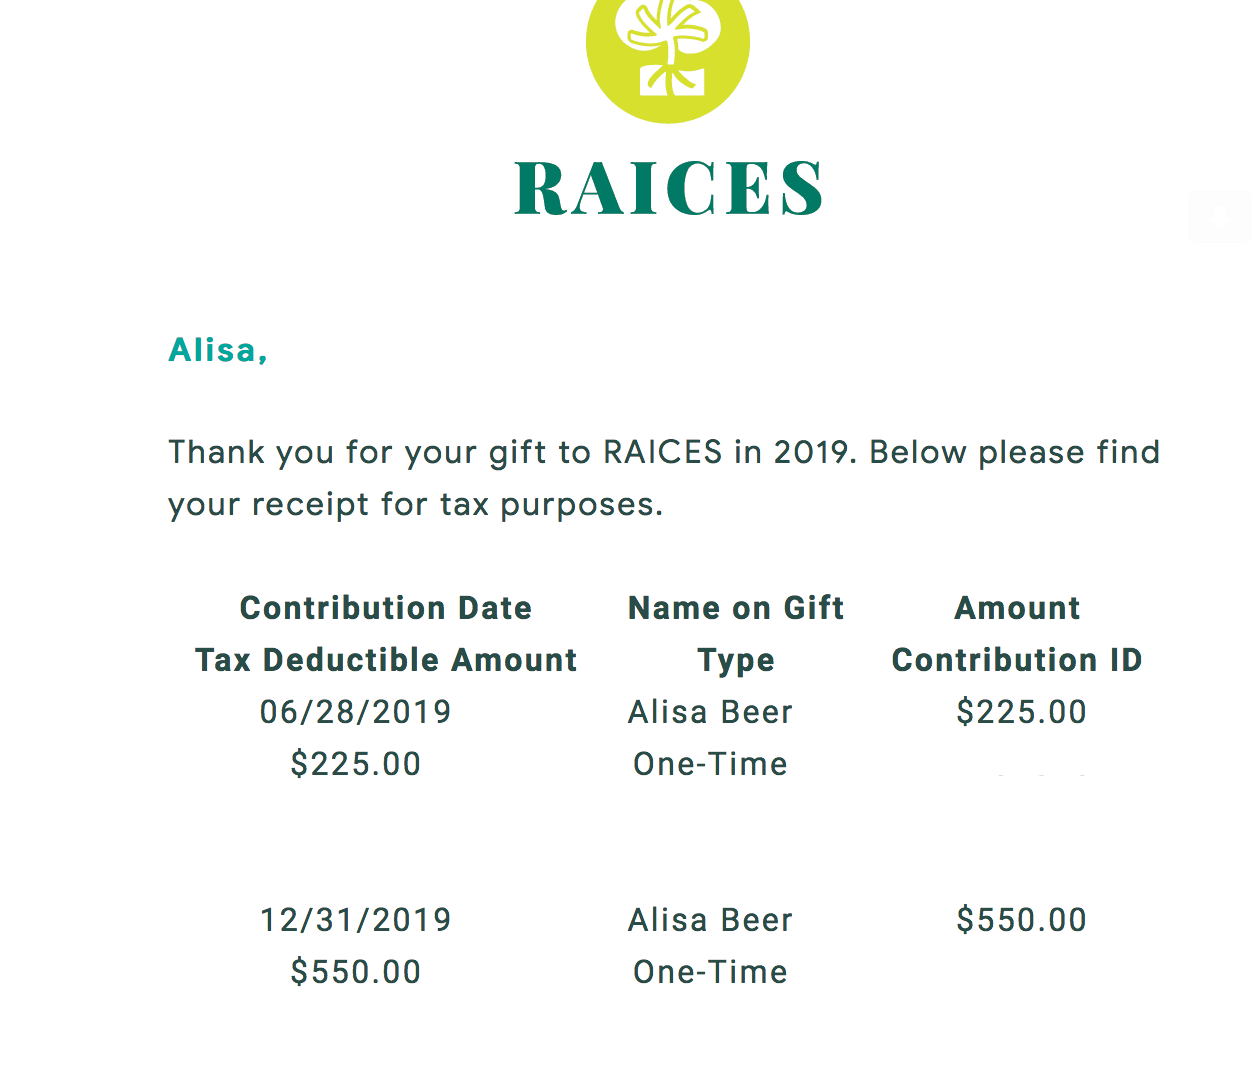 Screenshot from RAICES confirming a $27